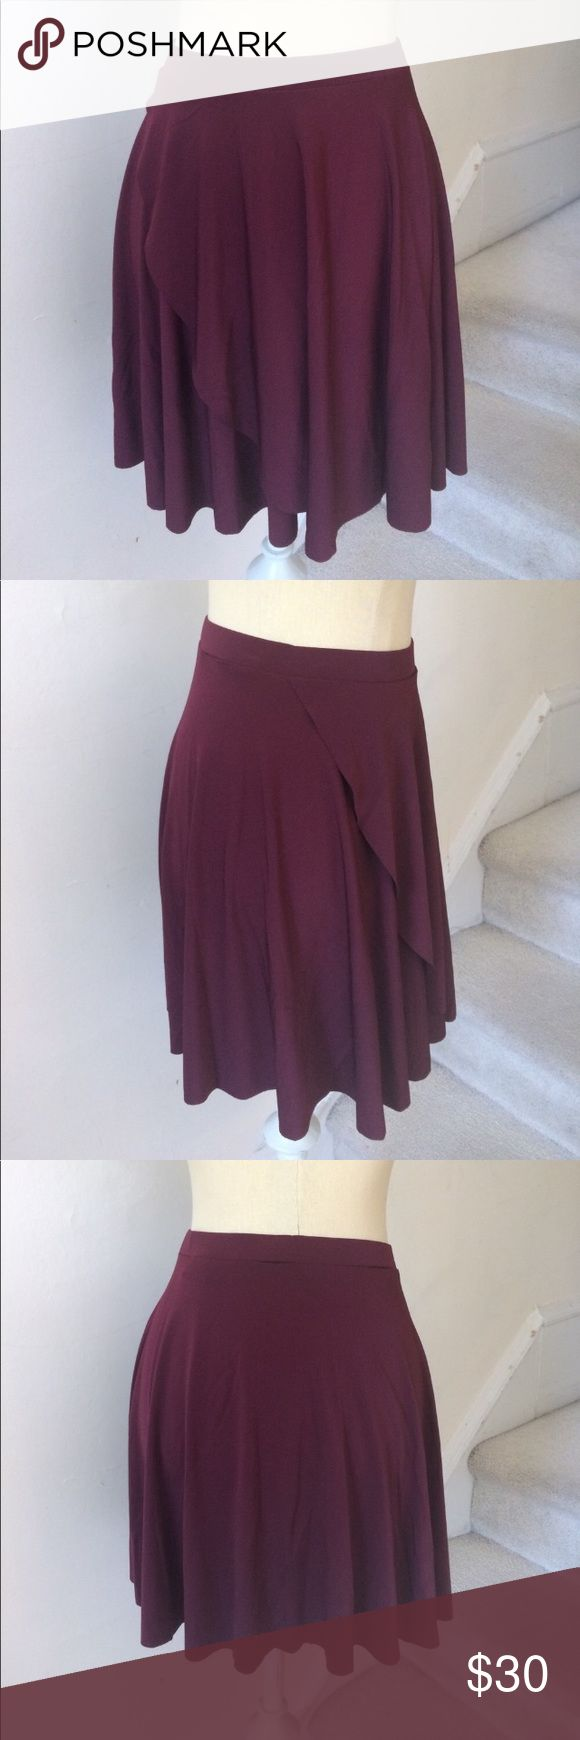 """Urban Outfitters Ballet Faux Wrap Mini Skirt NWOT Adorable faux wrap style skirt from Kimchi Blue (Urban Outfitters)   Plum/maroon color, perfect for both summer and winter!   Size medium   Good length skirt, meaning it's not too short and could be worn for a more formal occasion. Approximate measurements: waist 12 1/4"""" (waistband is very stretchy) length 17"""" new without tags. A13 Urban Outfitters Skirts Mini"""